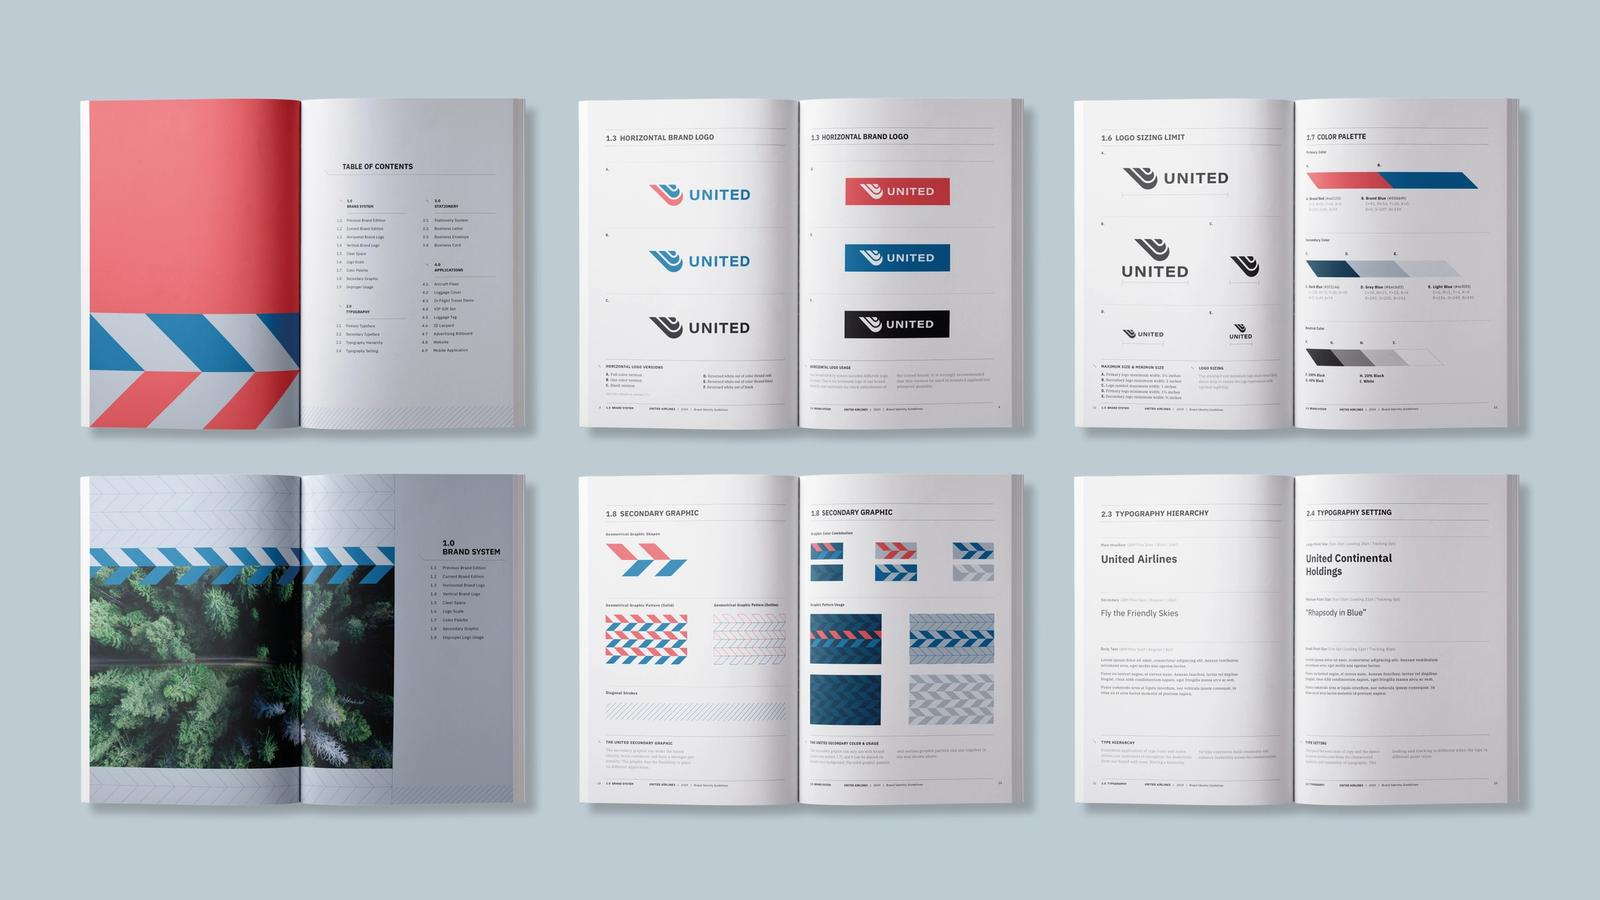 United Airlines // brand standards manual